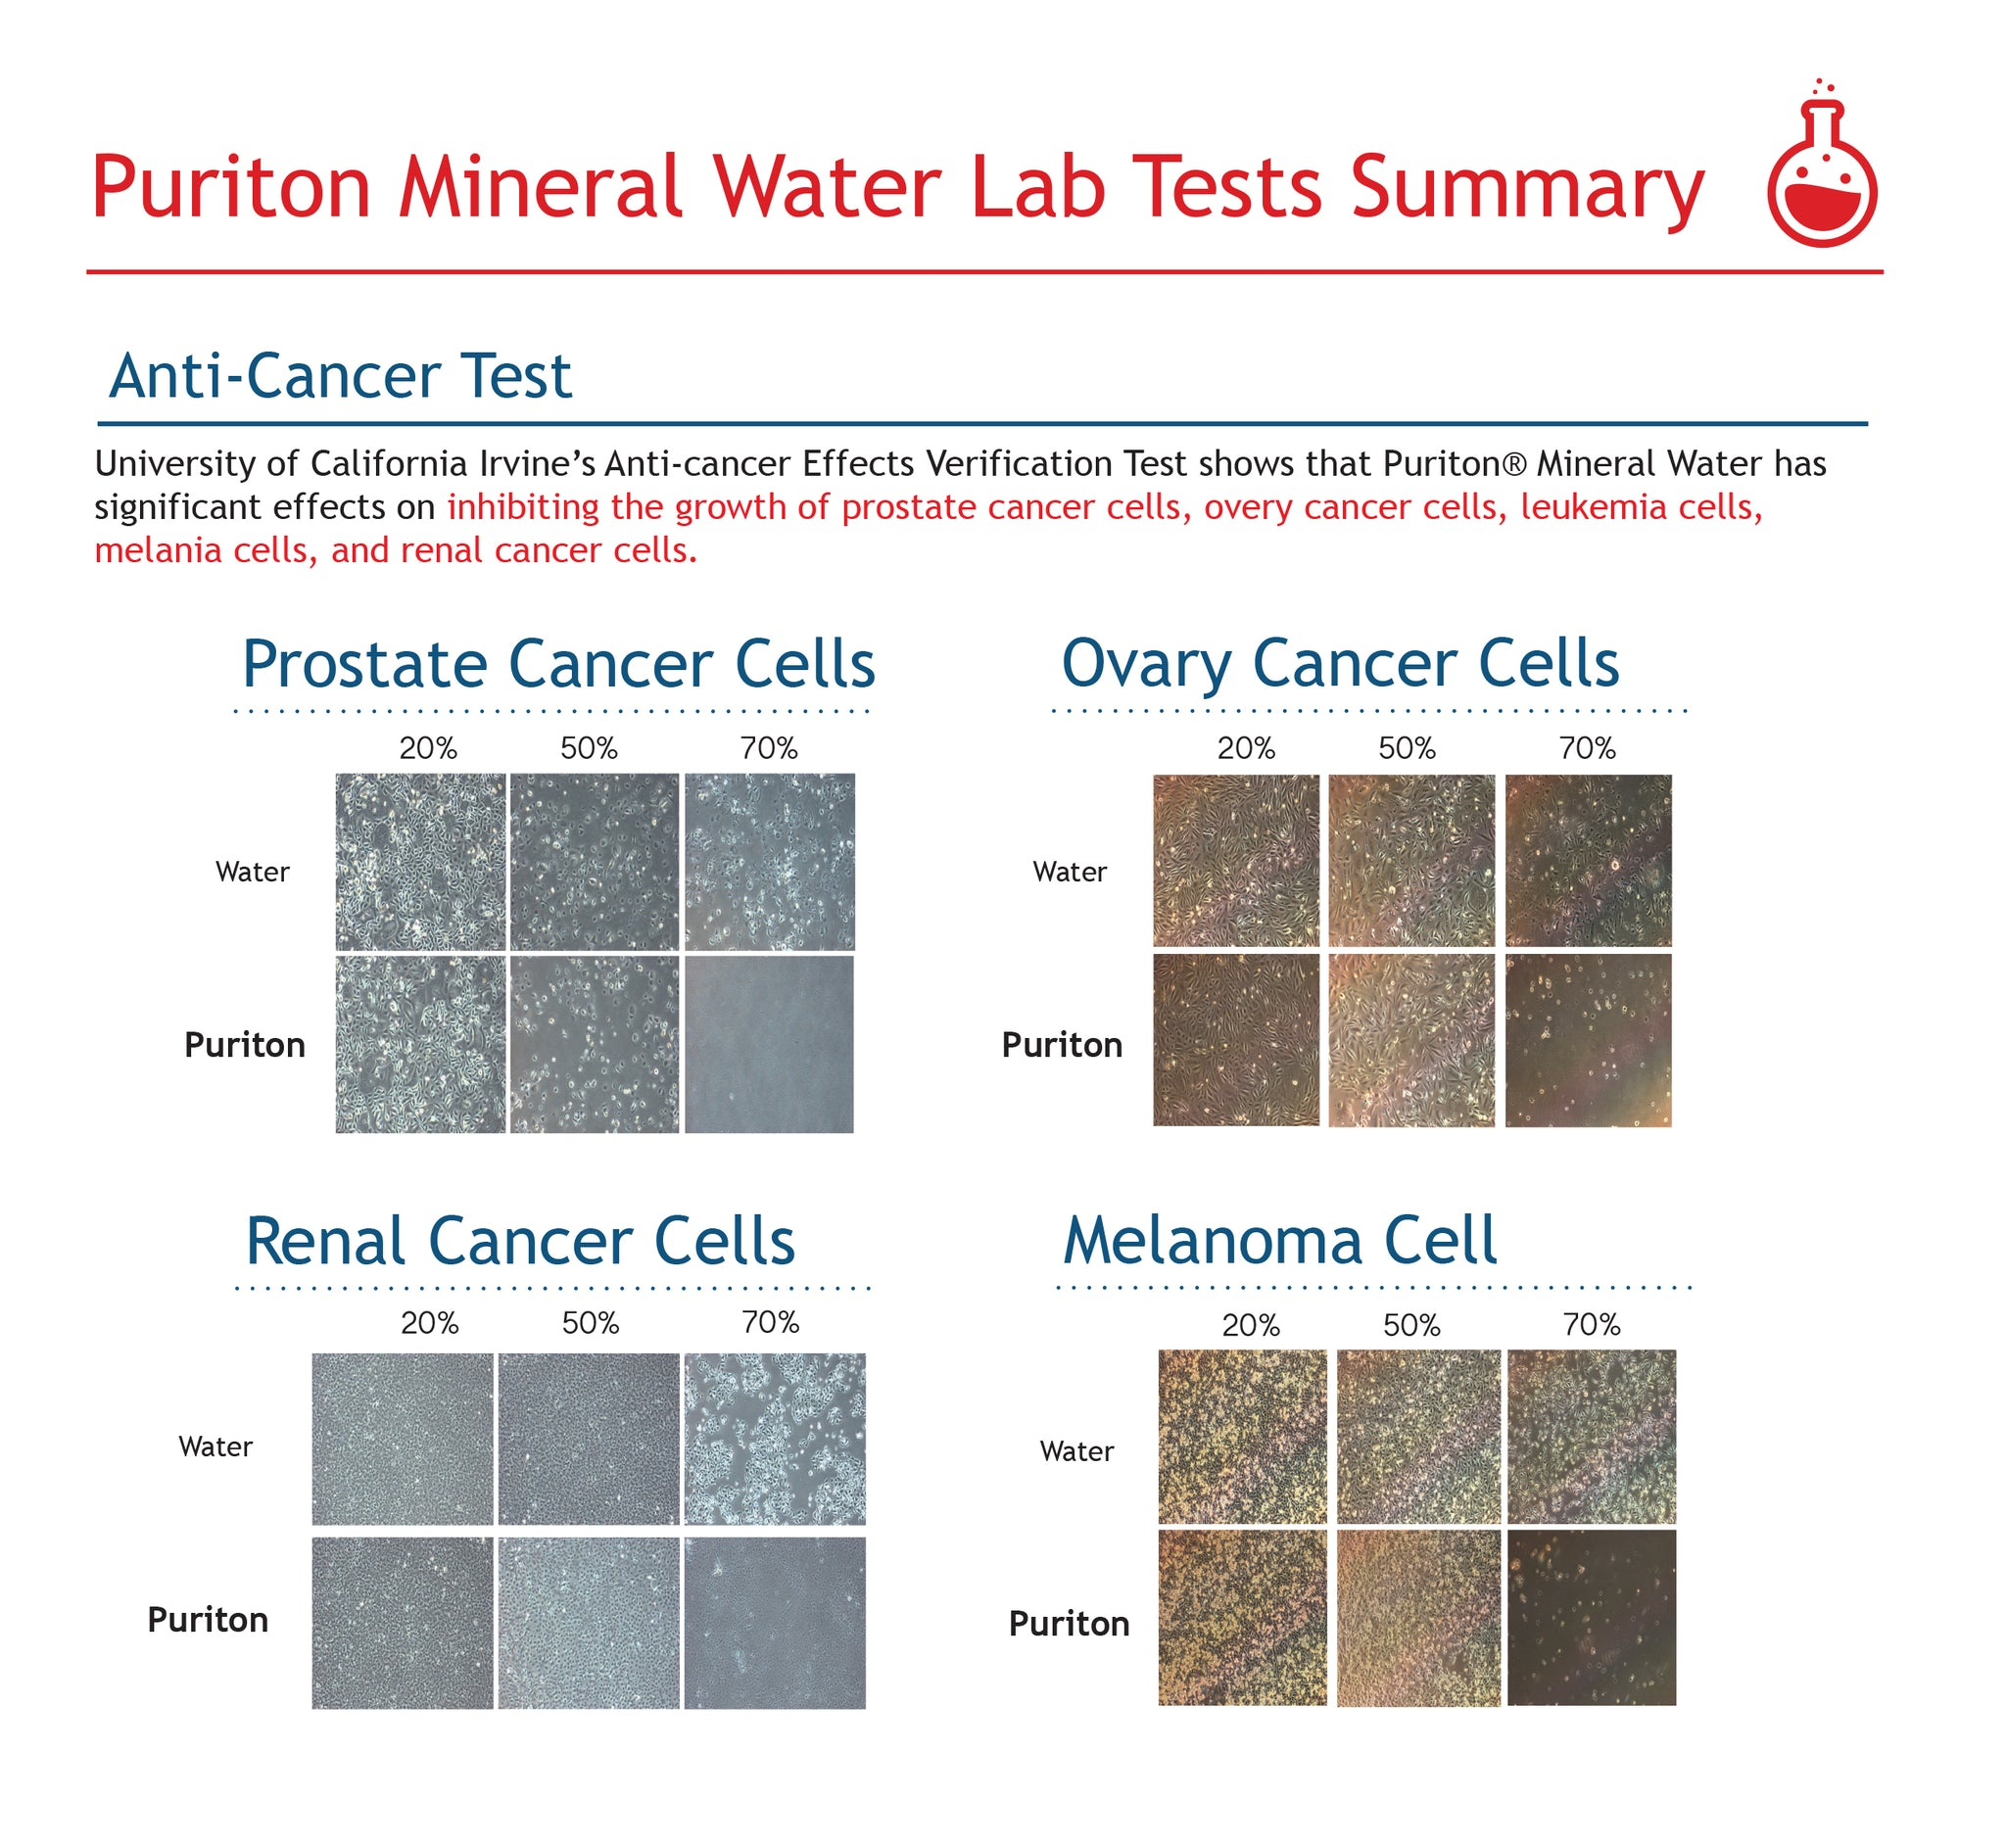 Puriton mineral water lab test anti- cancer test prostate cancer ovary cancer renal cancer melanoma